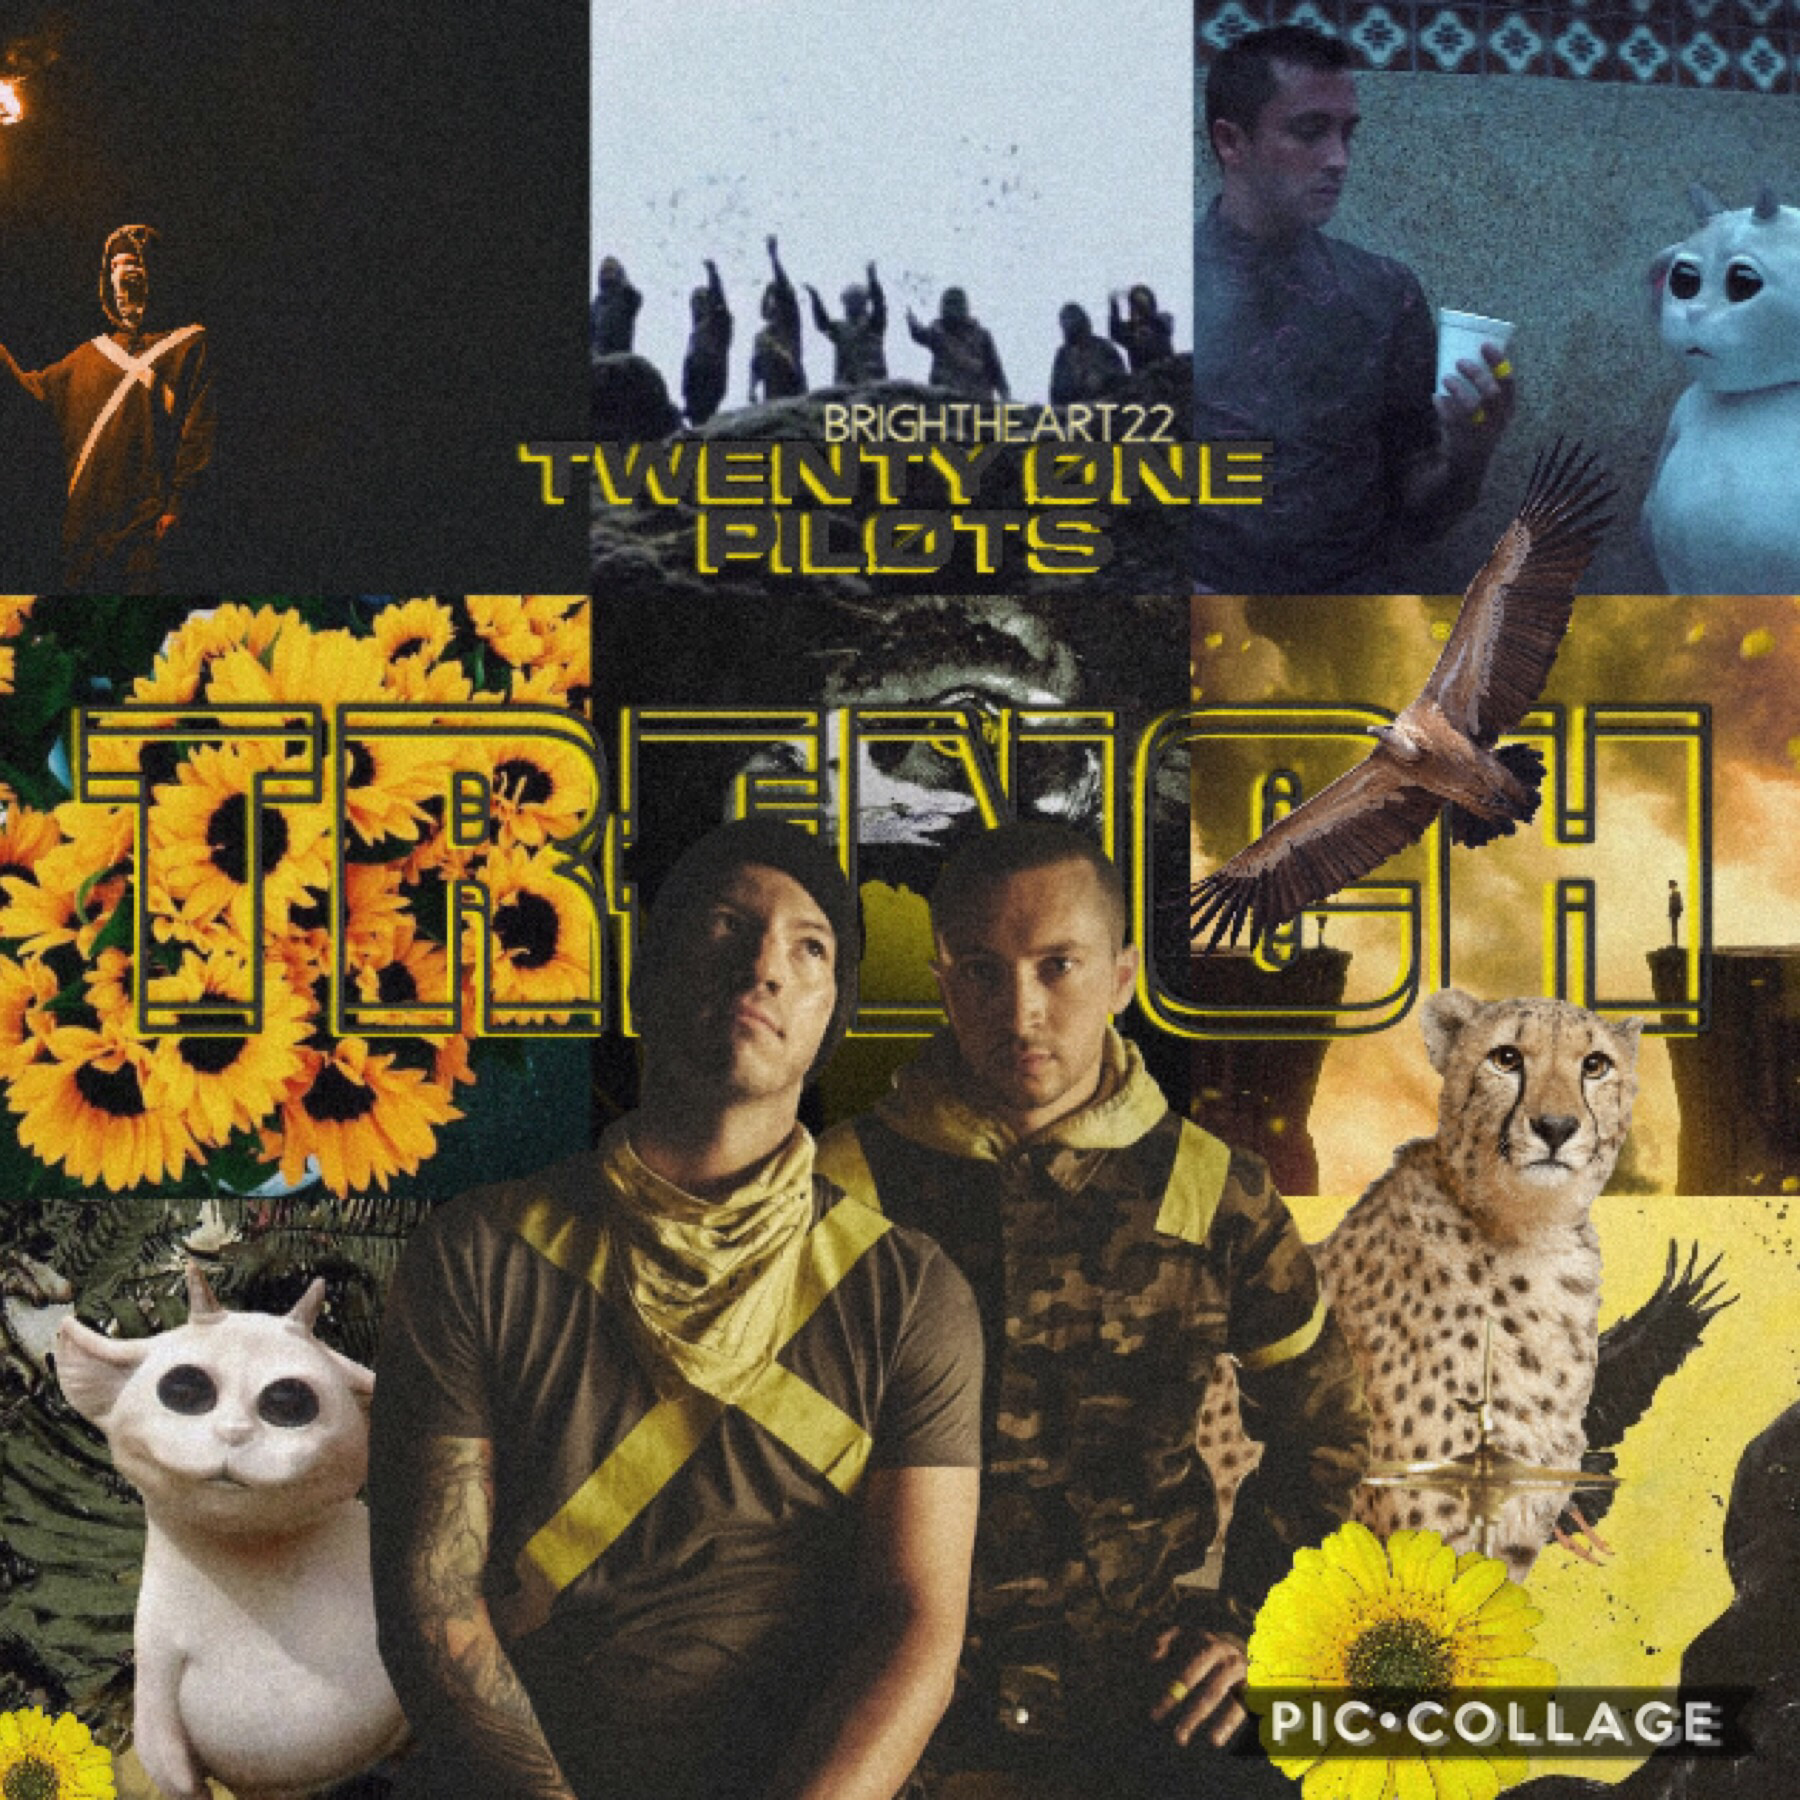 🌻TAP THE SUNFLOWER🌻 Hey! 👋🏻  I didn't have any inspo so here's a Trench Era edit I love them sm  Have a great day! -Brightheart22